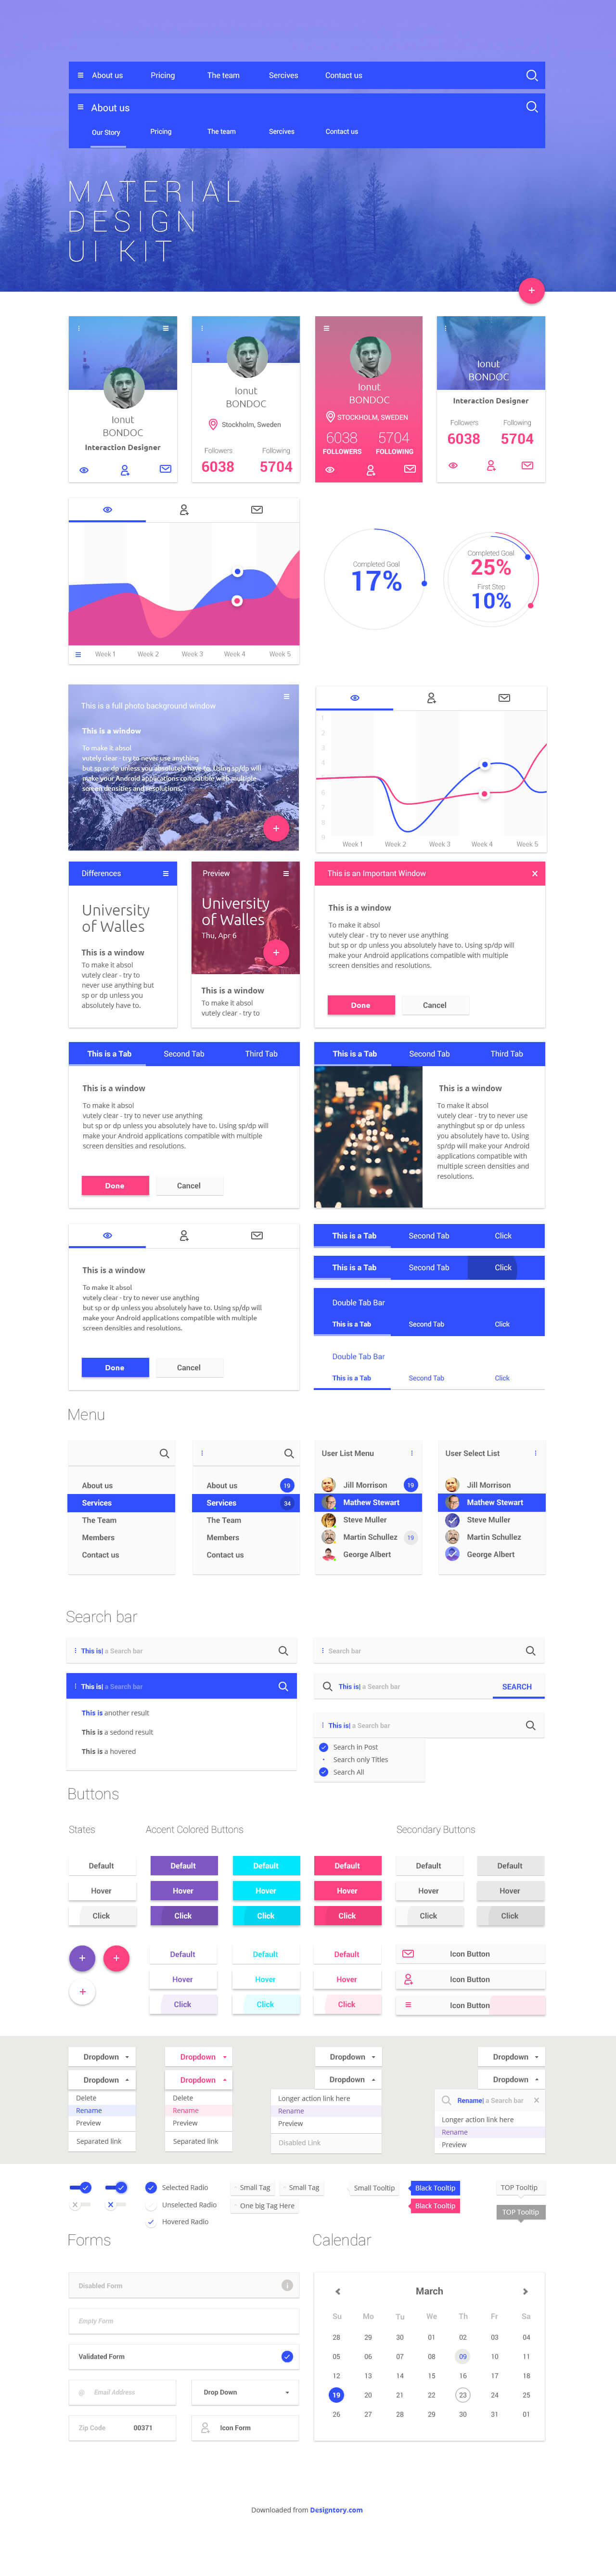 Free Material Design Ui Kit For Web Designers